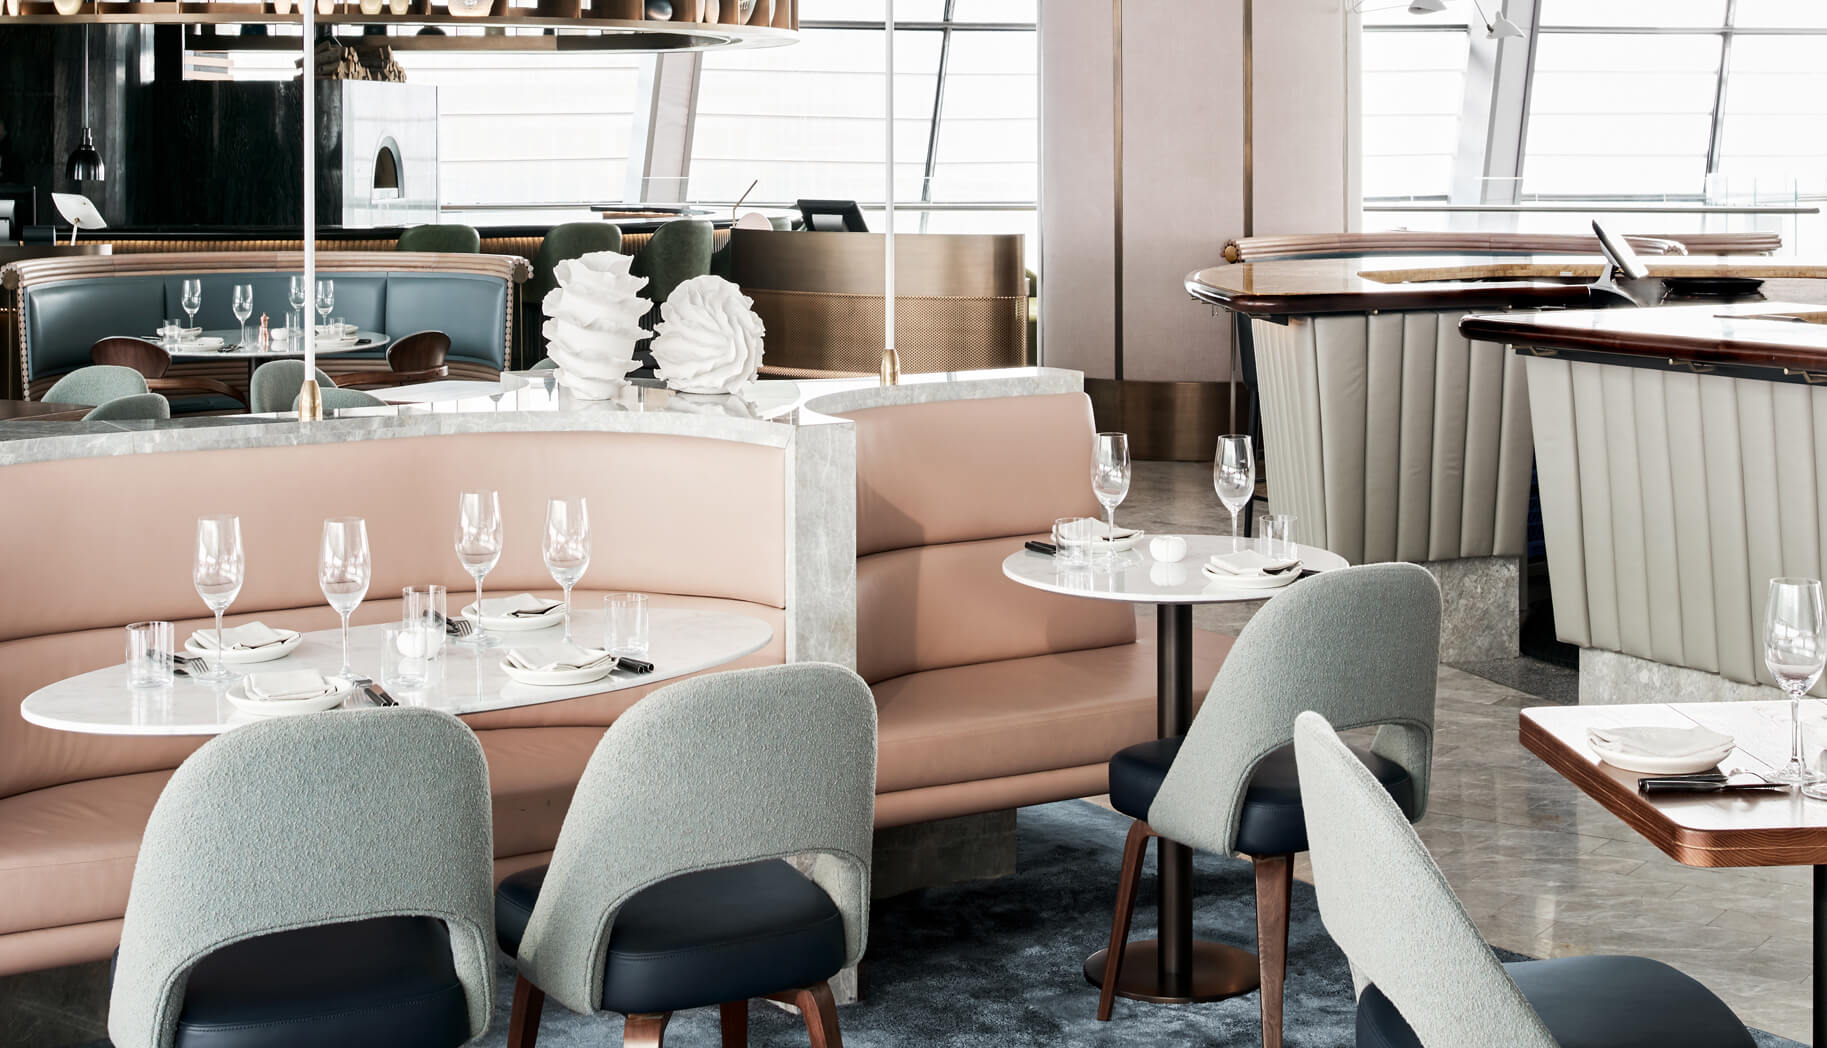 Restaurant Dining - The Loft at Dubai Opera